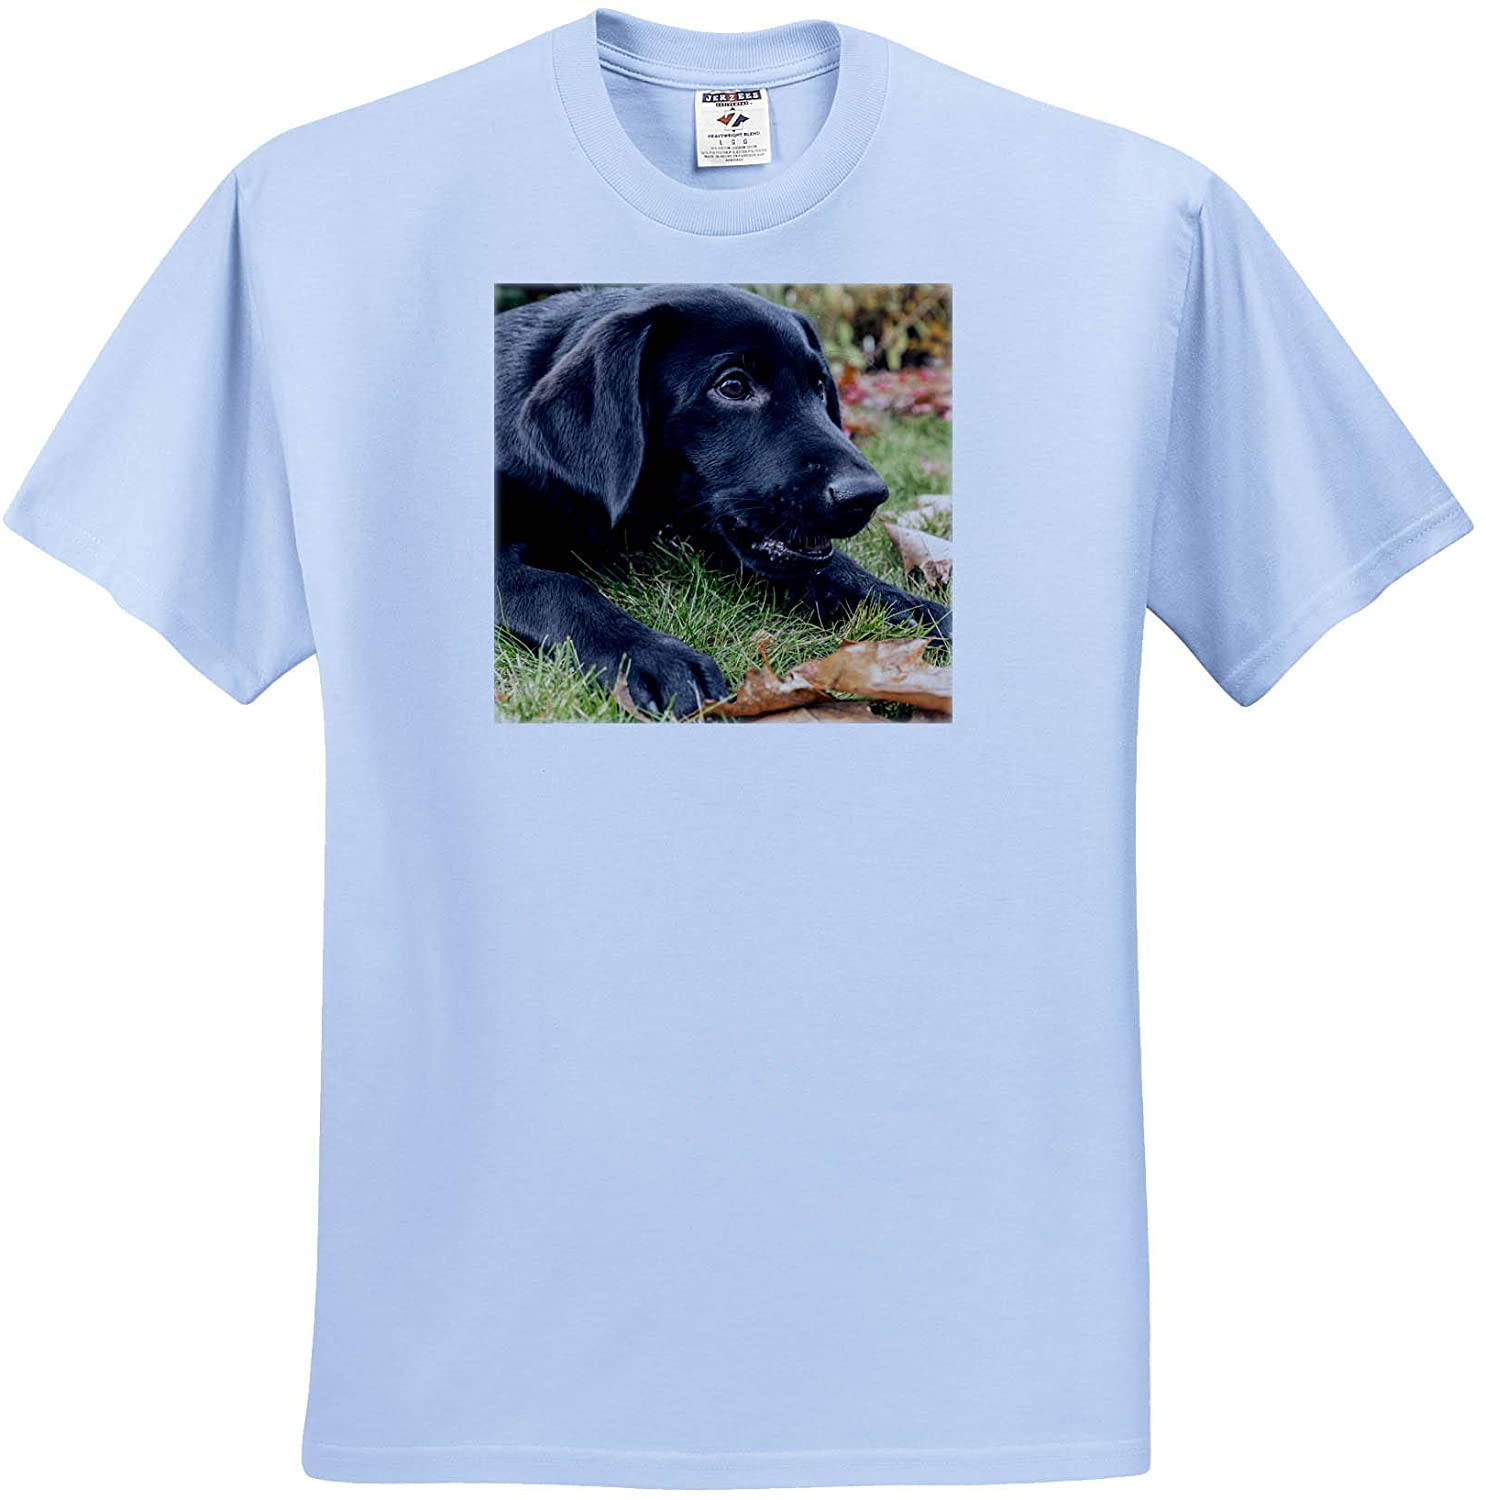 3dRose Danita Delimont - Animals - Portrait of a Three Month Old Black Labrador Retriever Puppy - Youth Light-Blue-T-Shirt Small(6-8) (ts_332862_60)